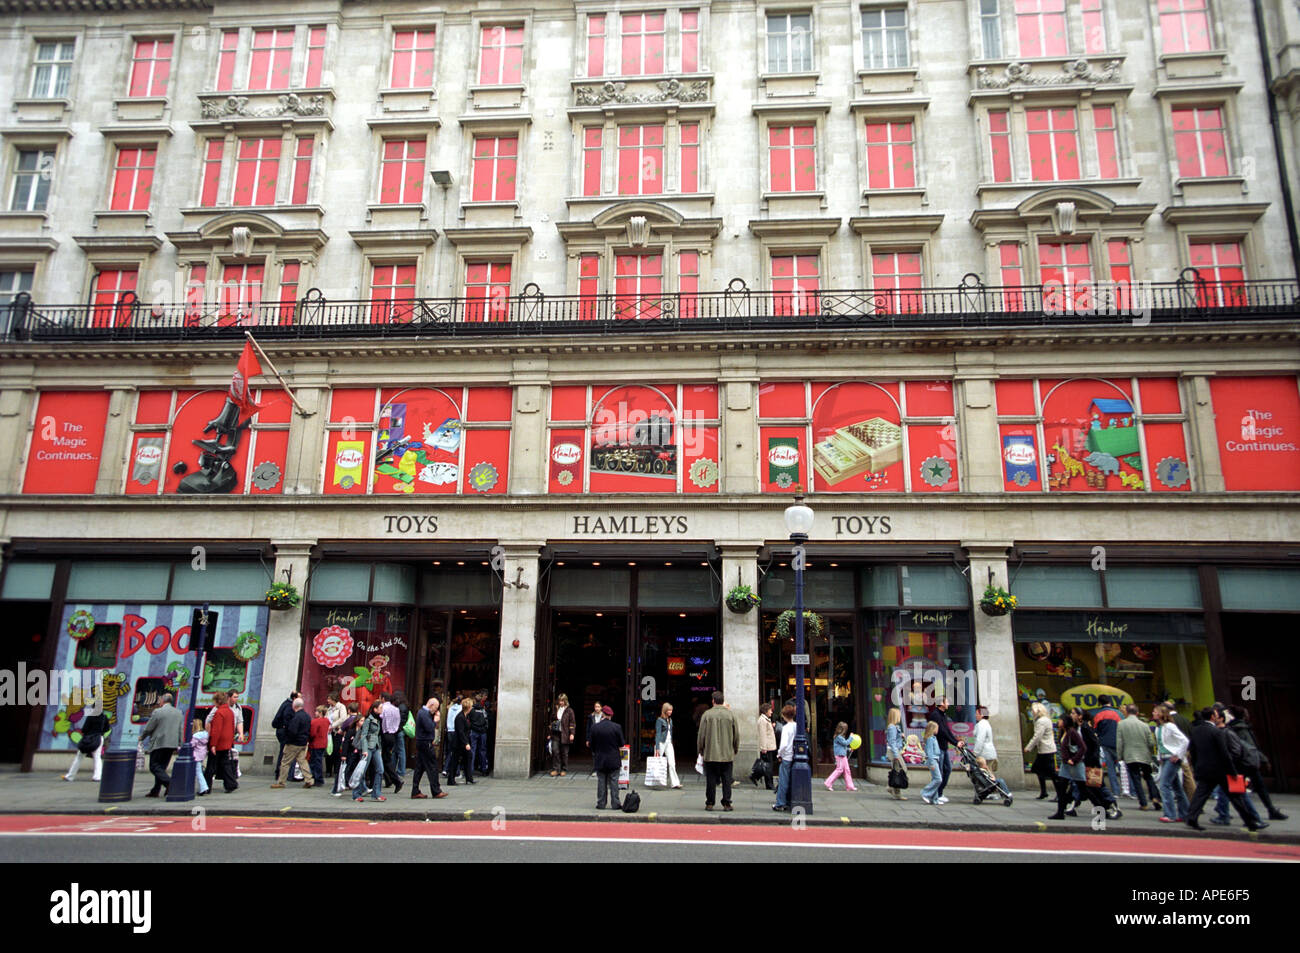 Toys From Hamleys : Hamleys toys store stockfotos bilder